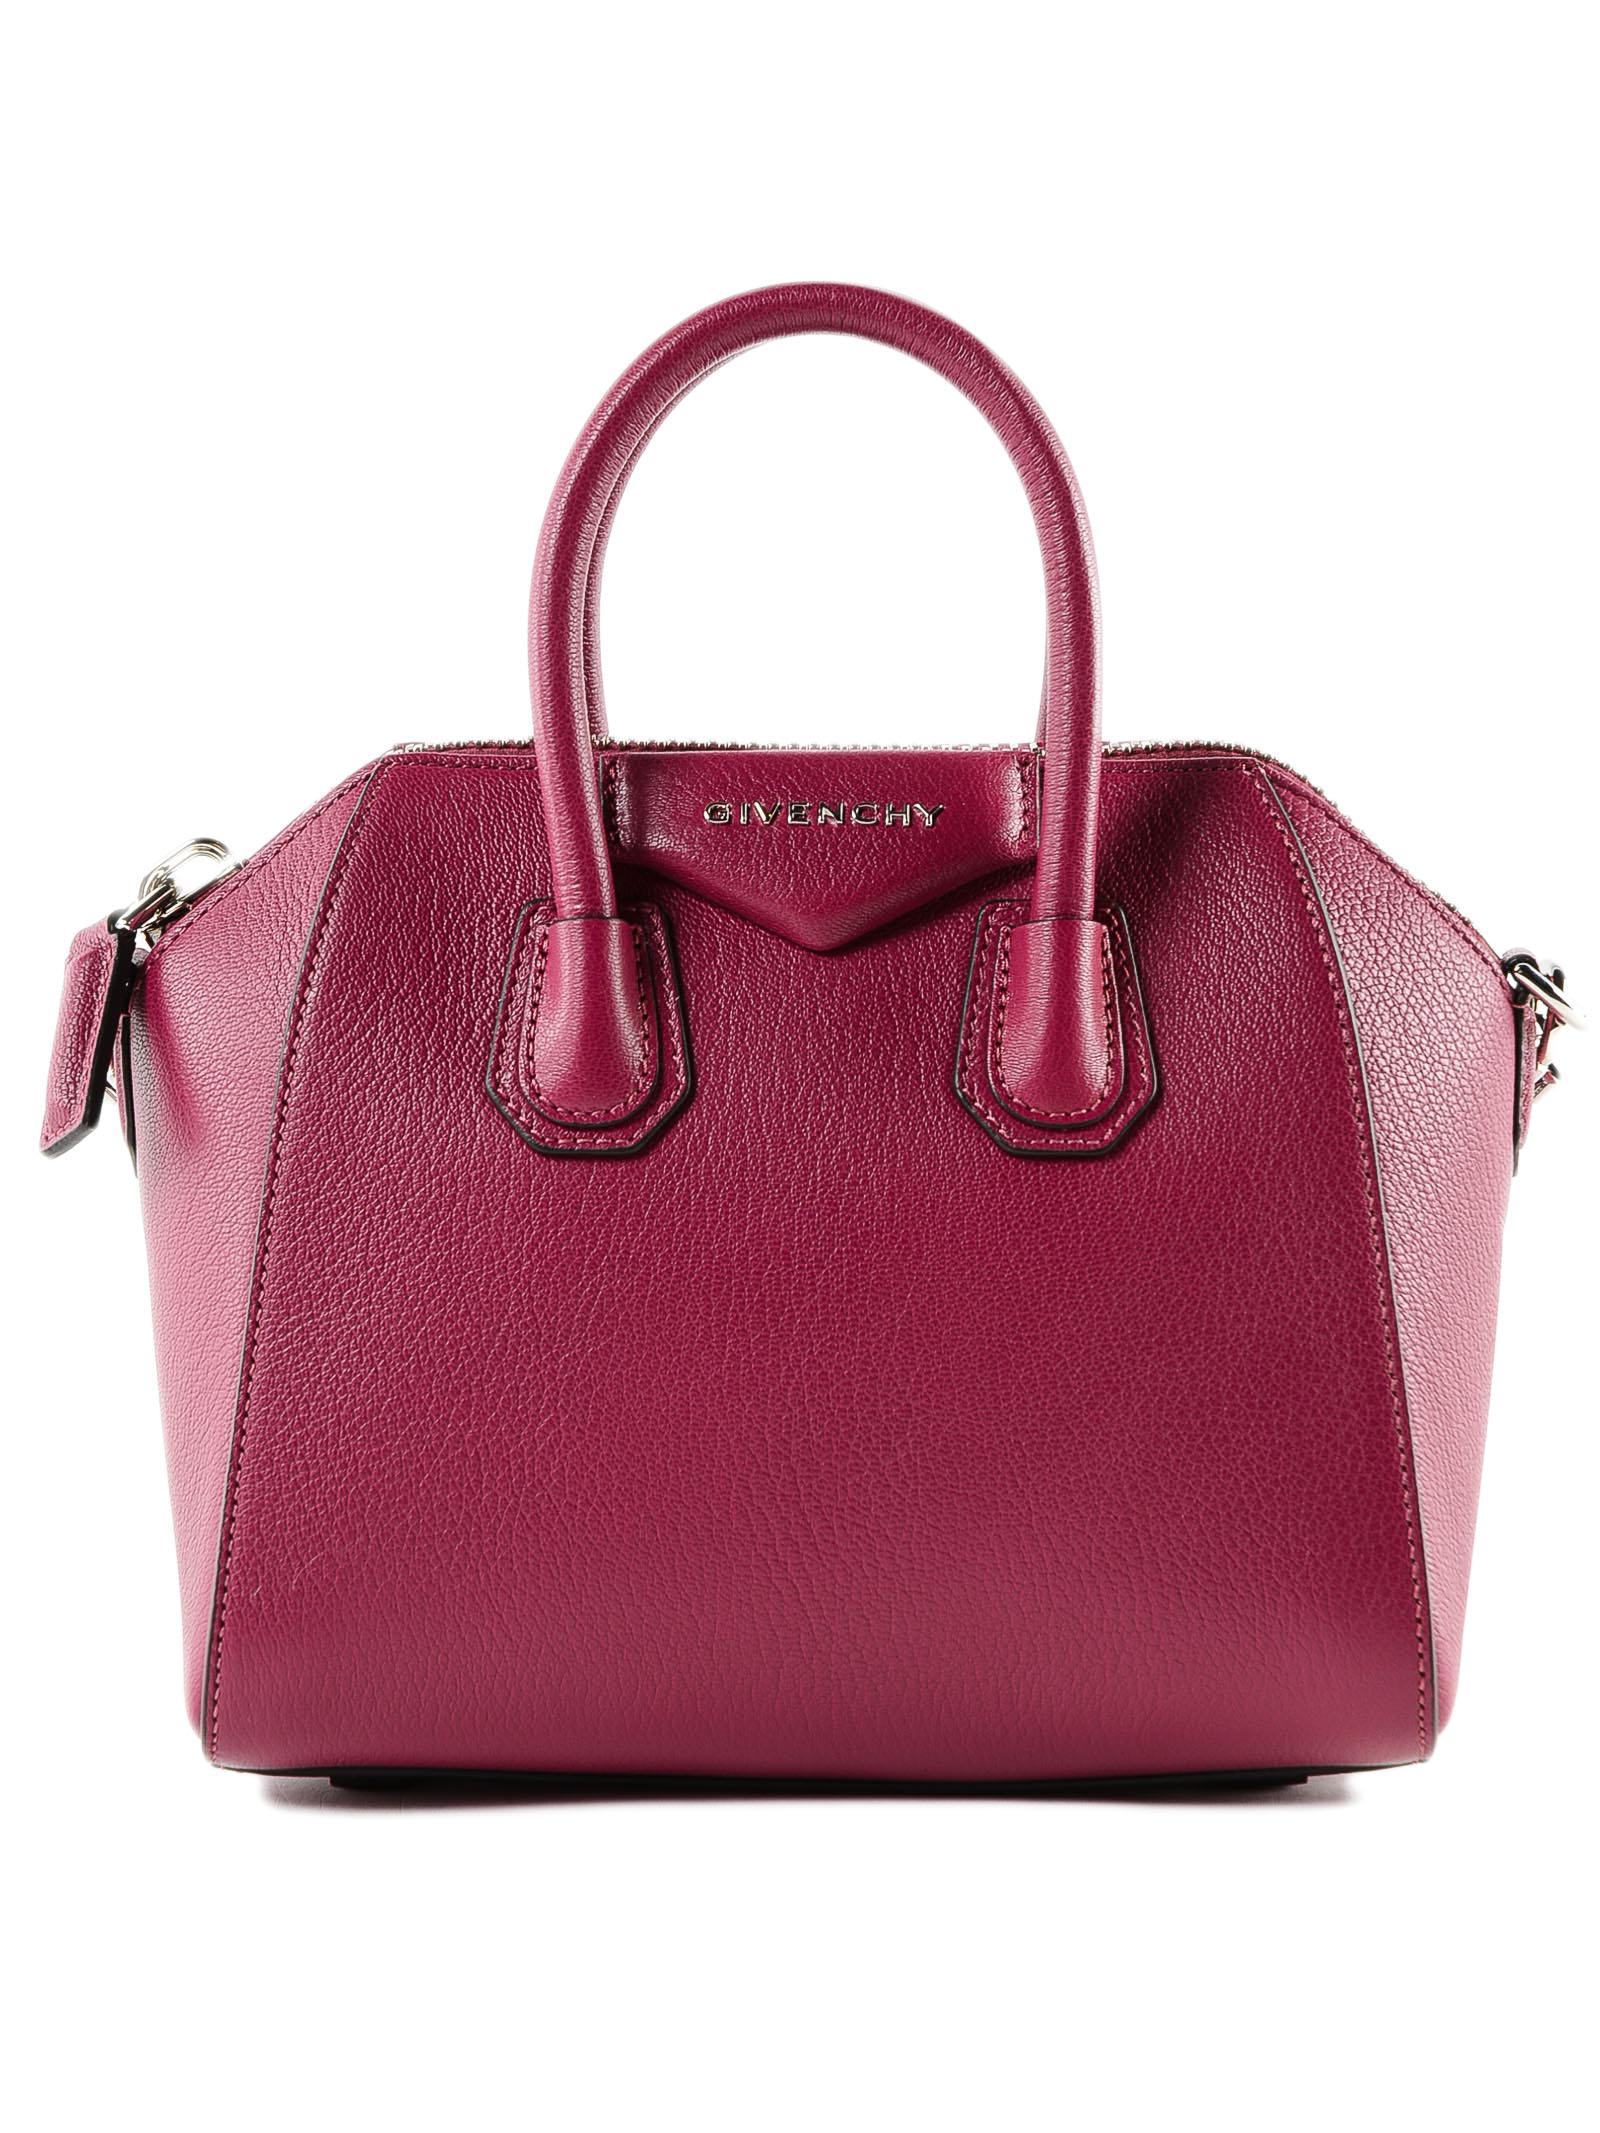 Givenchy - Purple Antigona Bag - Lyst. View fullscreen 56e9a2b7a8